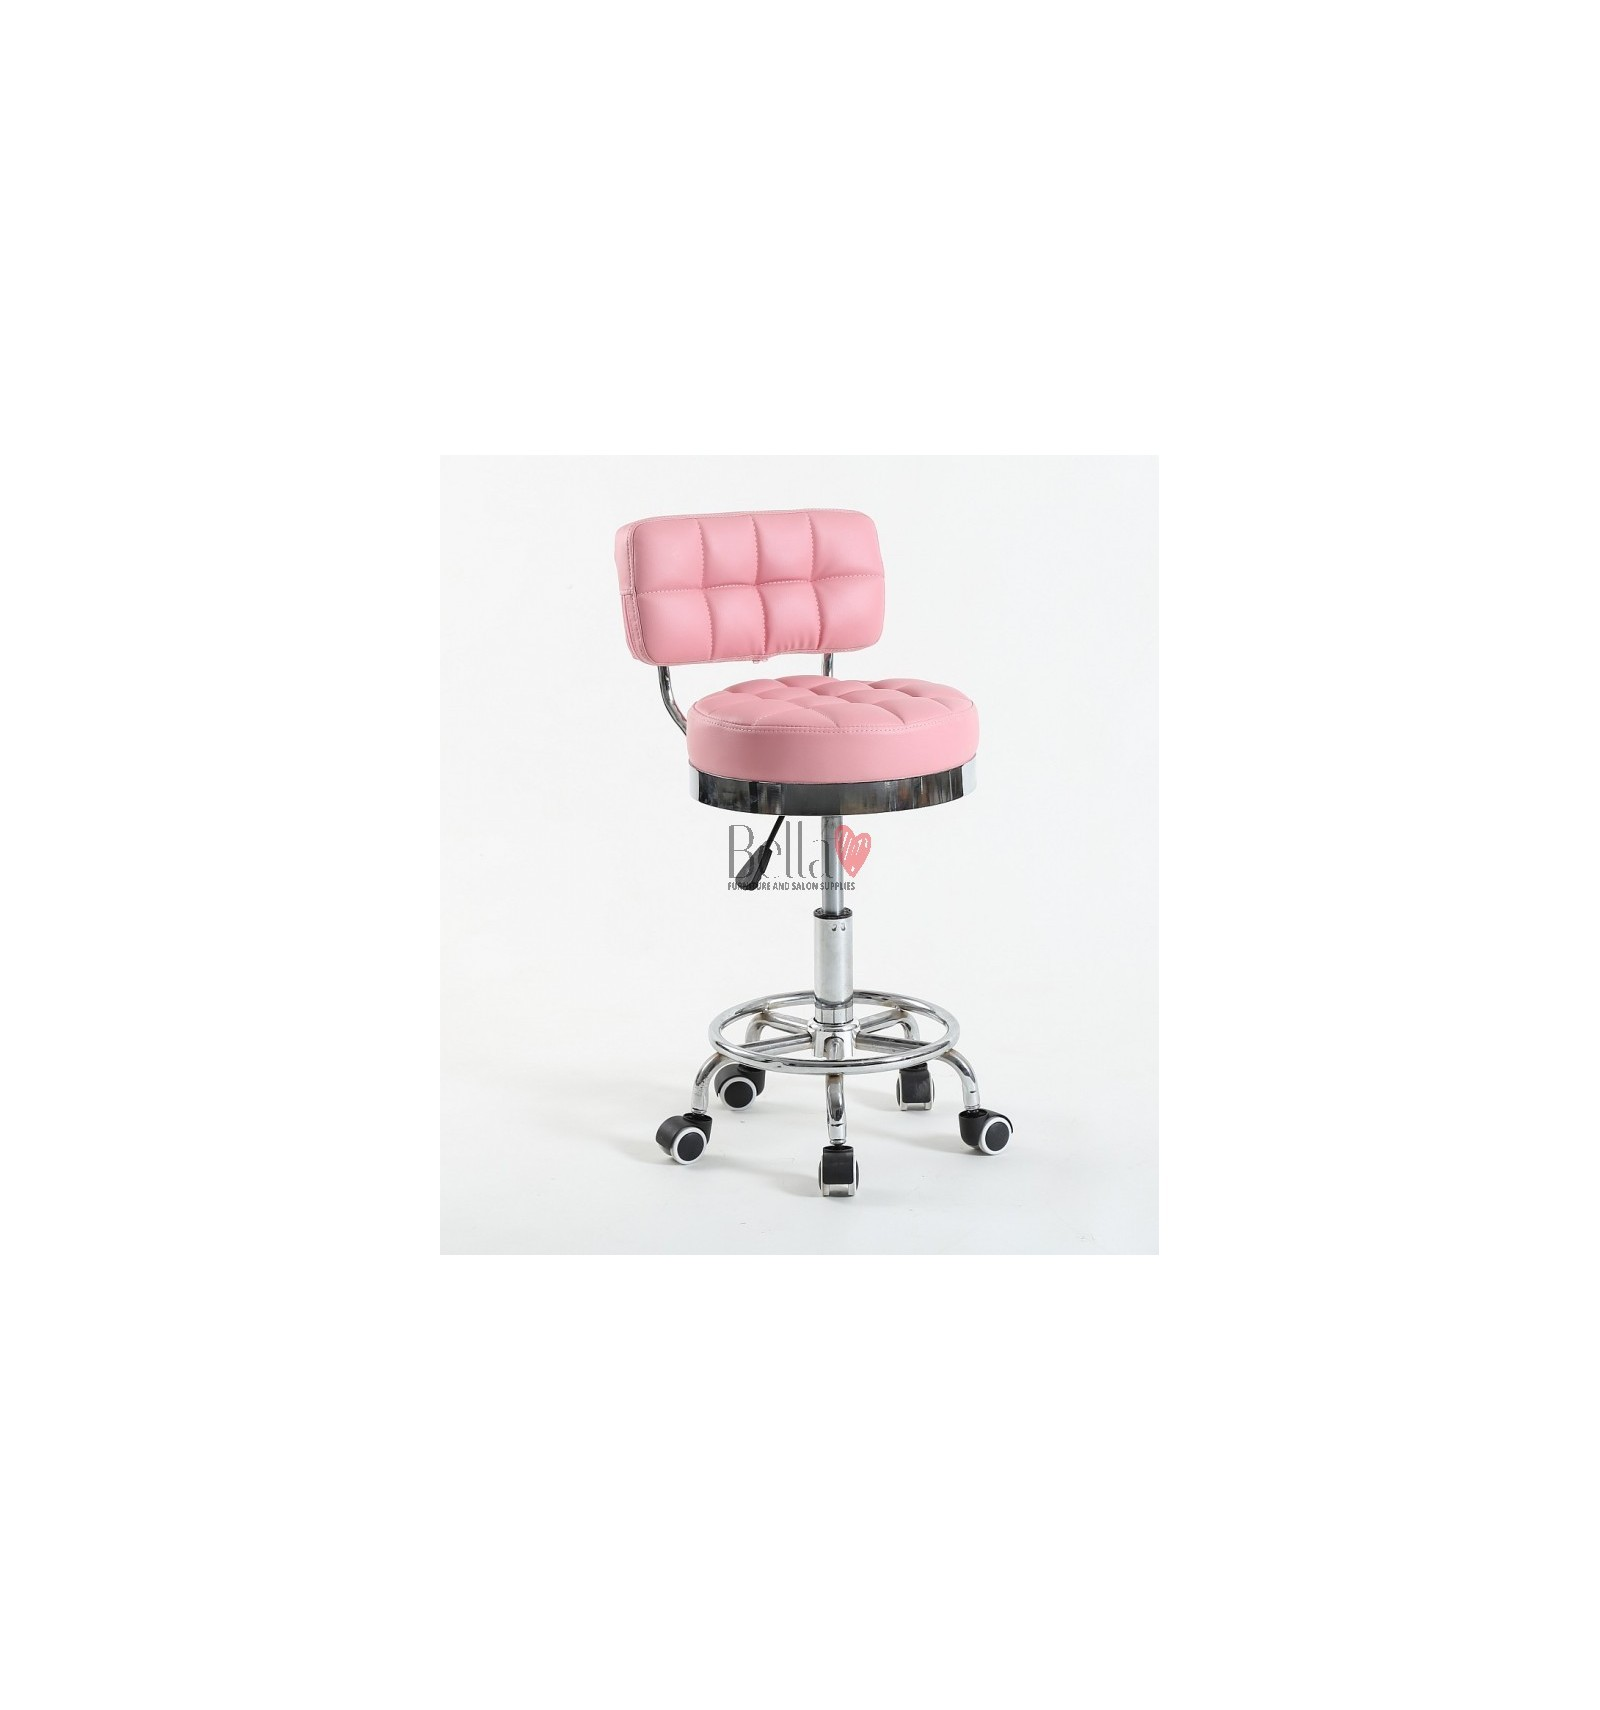 Bella Furniture Pink Chairs On Wheels In Ireland Hairdresser For Hc636